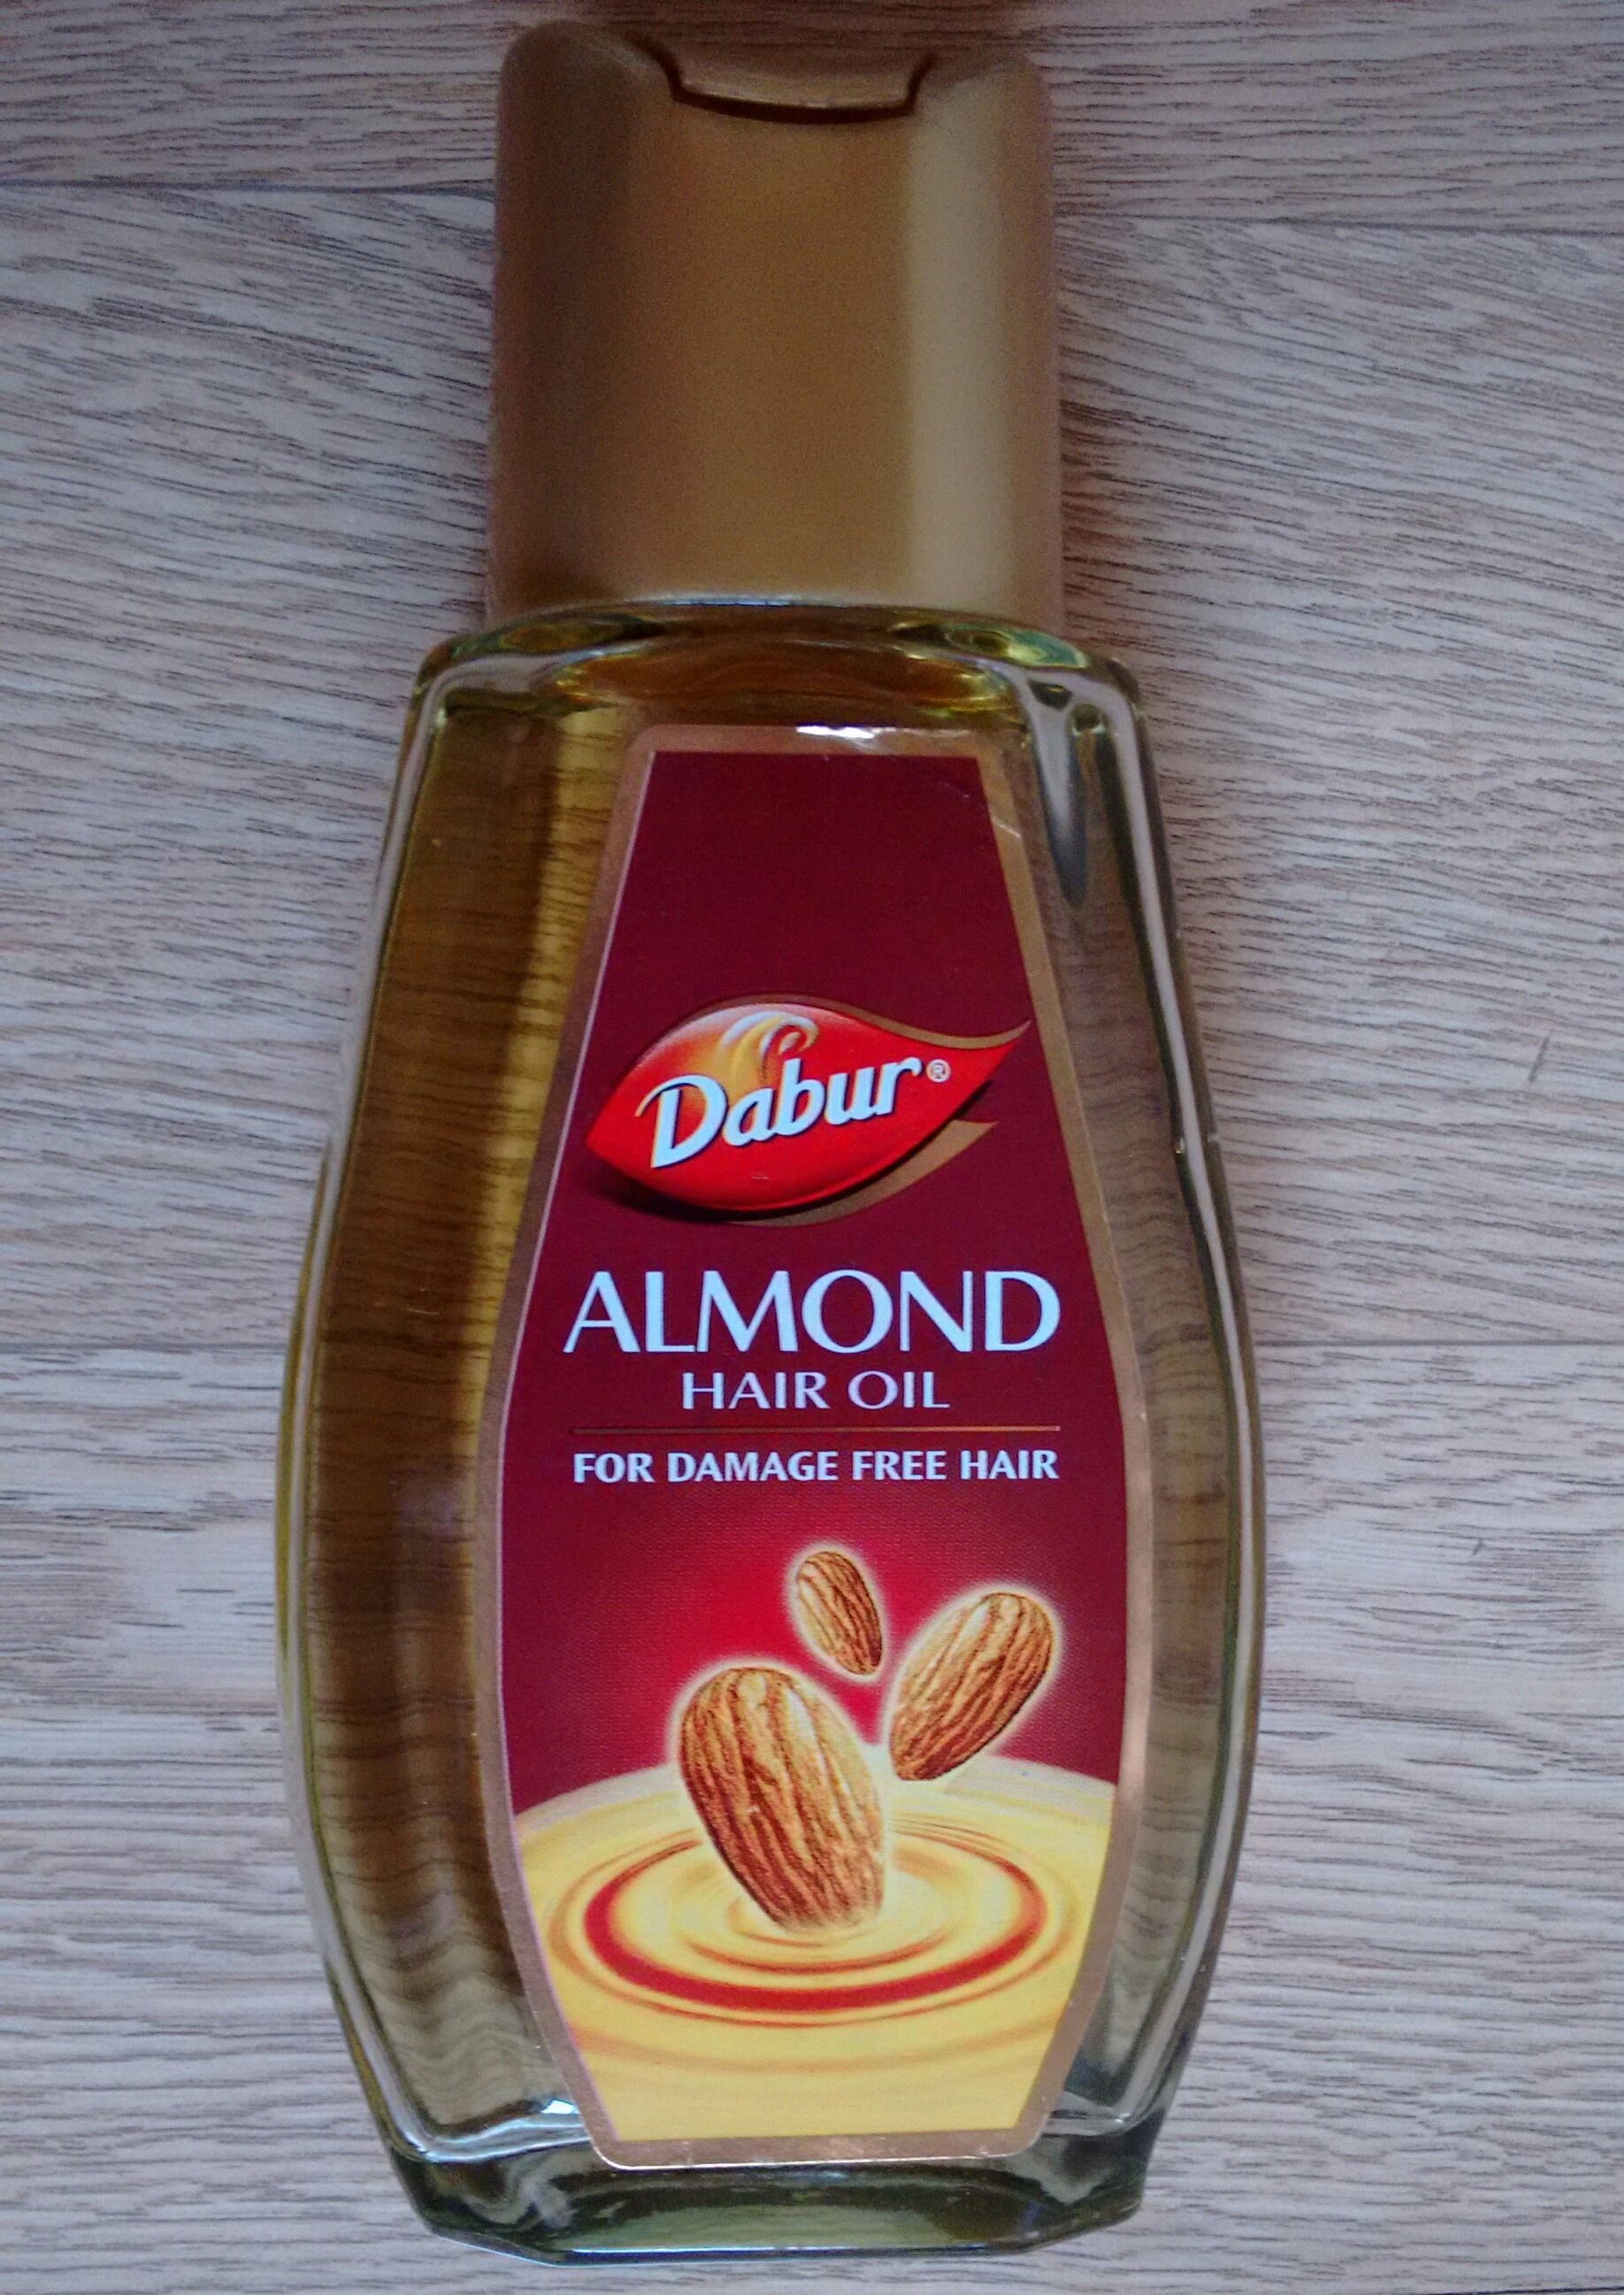 Dabur almond hair oil review dabur almond hair oil price